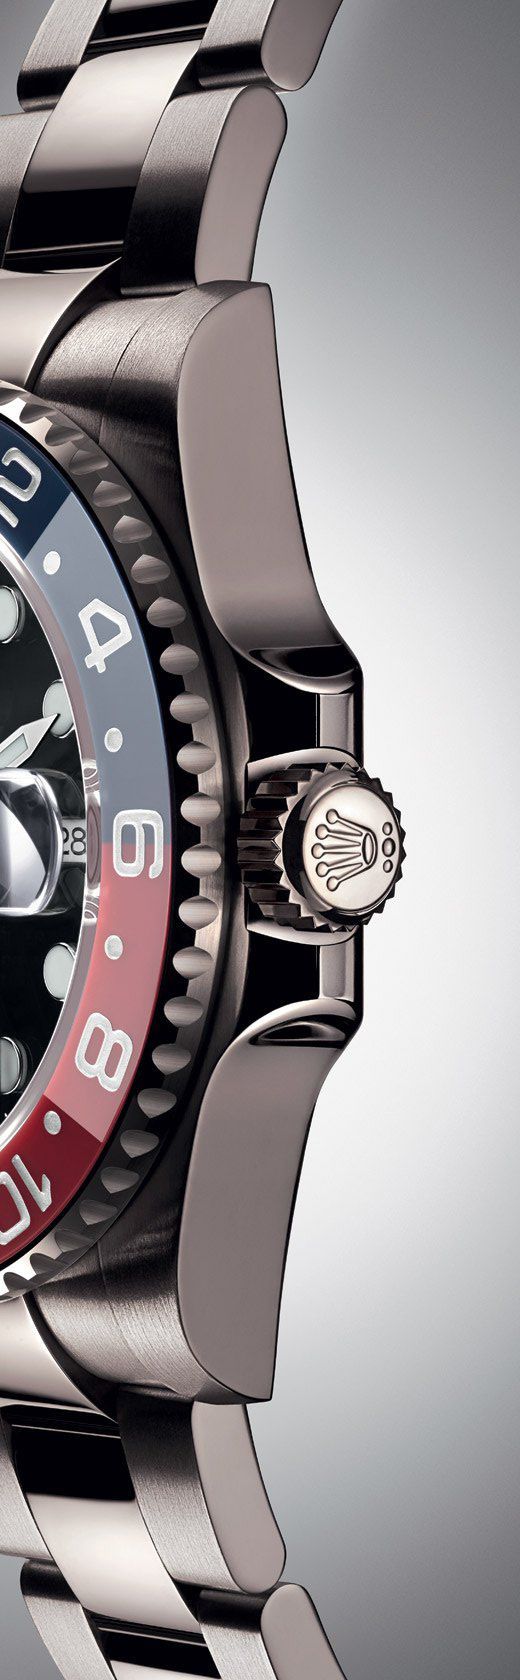 Rolex GMT - Men's Watch #watch #rolex